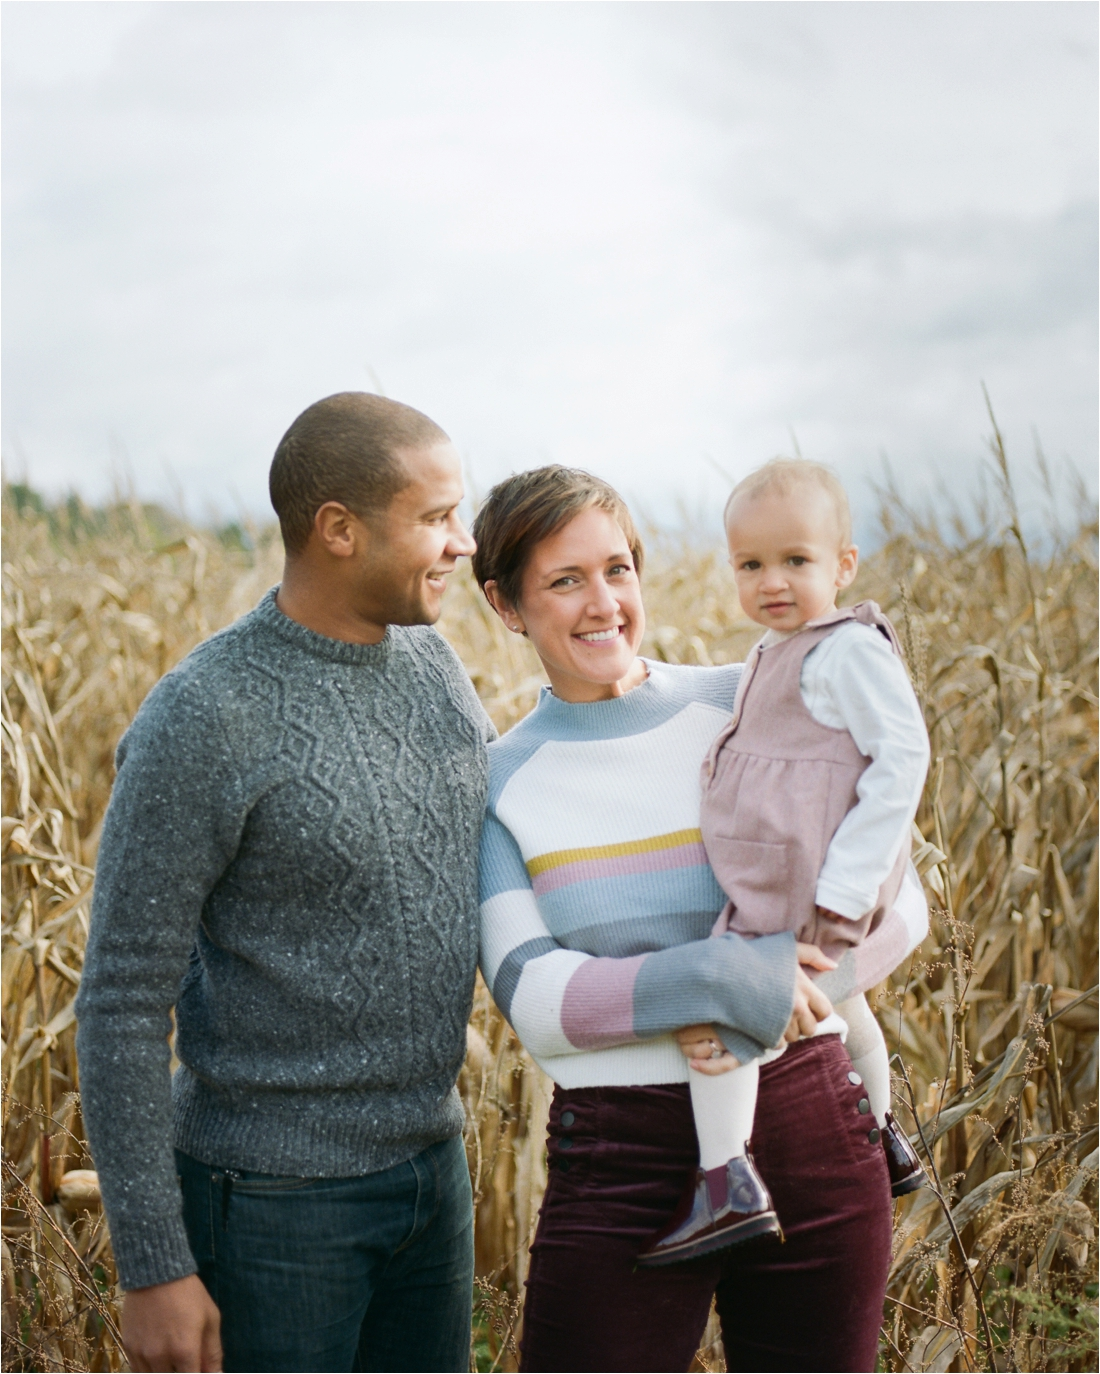 Natural Family Photography in Buffalo New York | Shaw Photo Co.